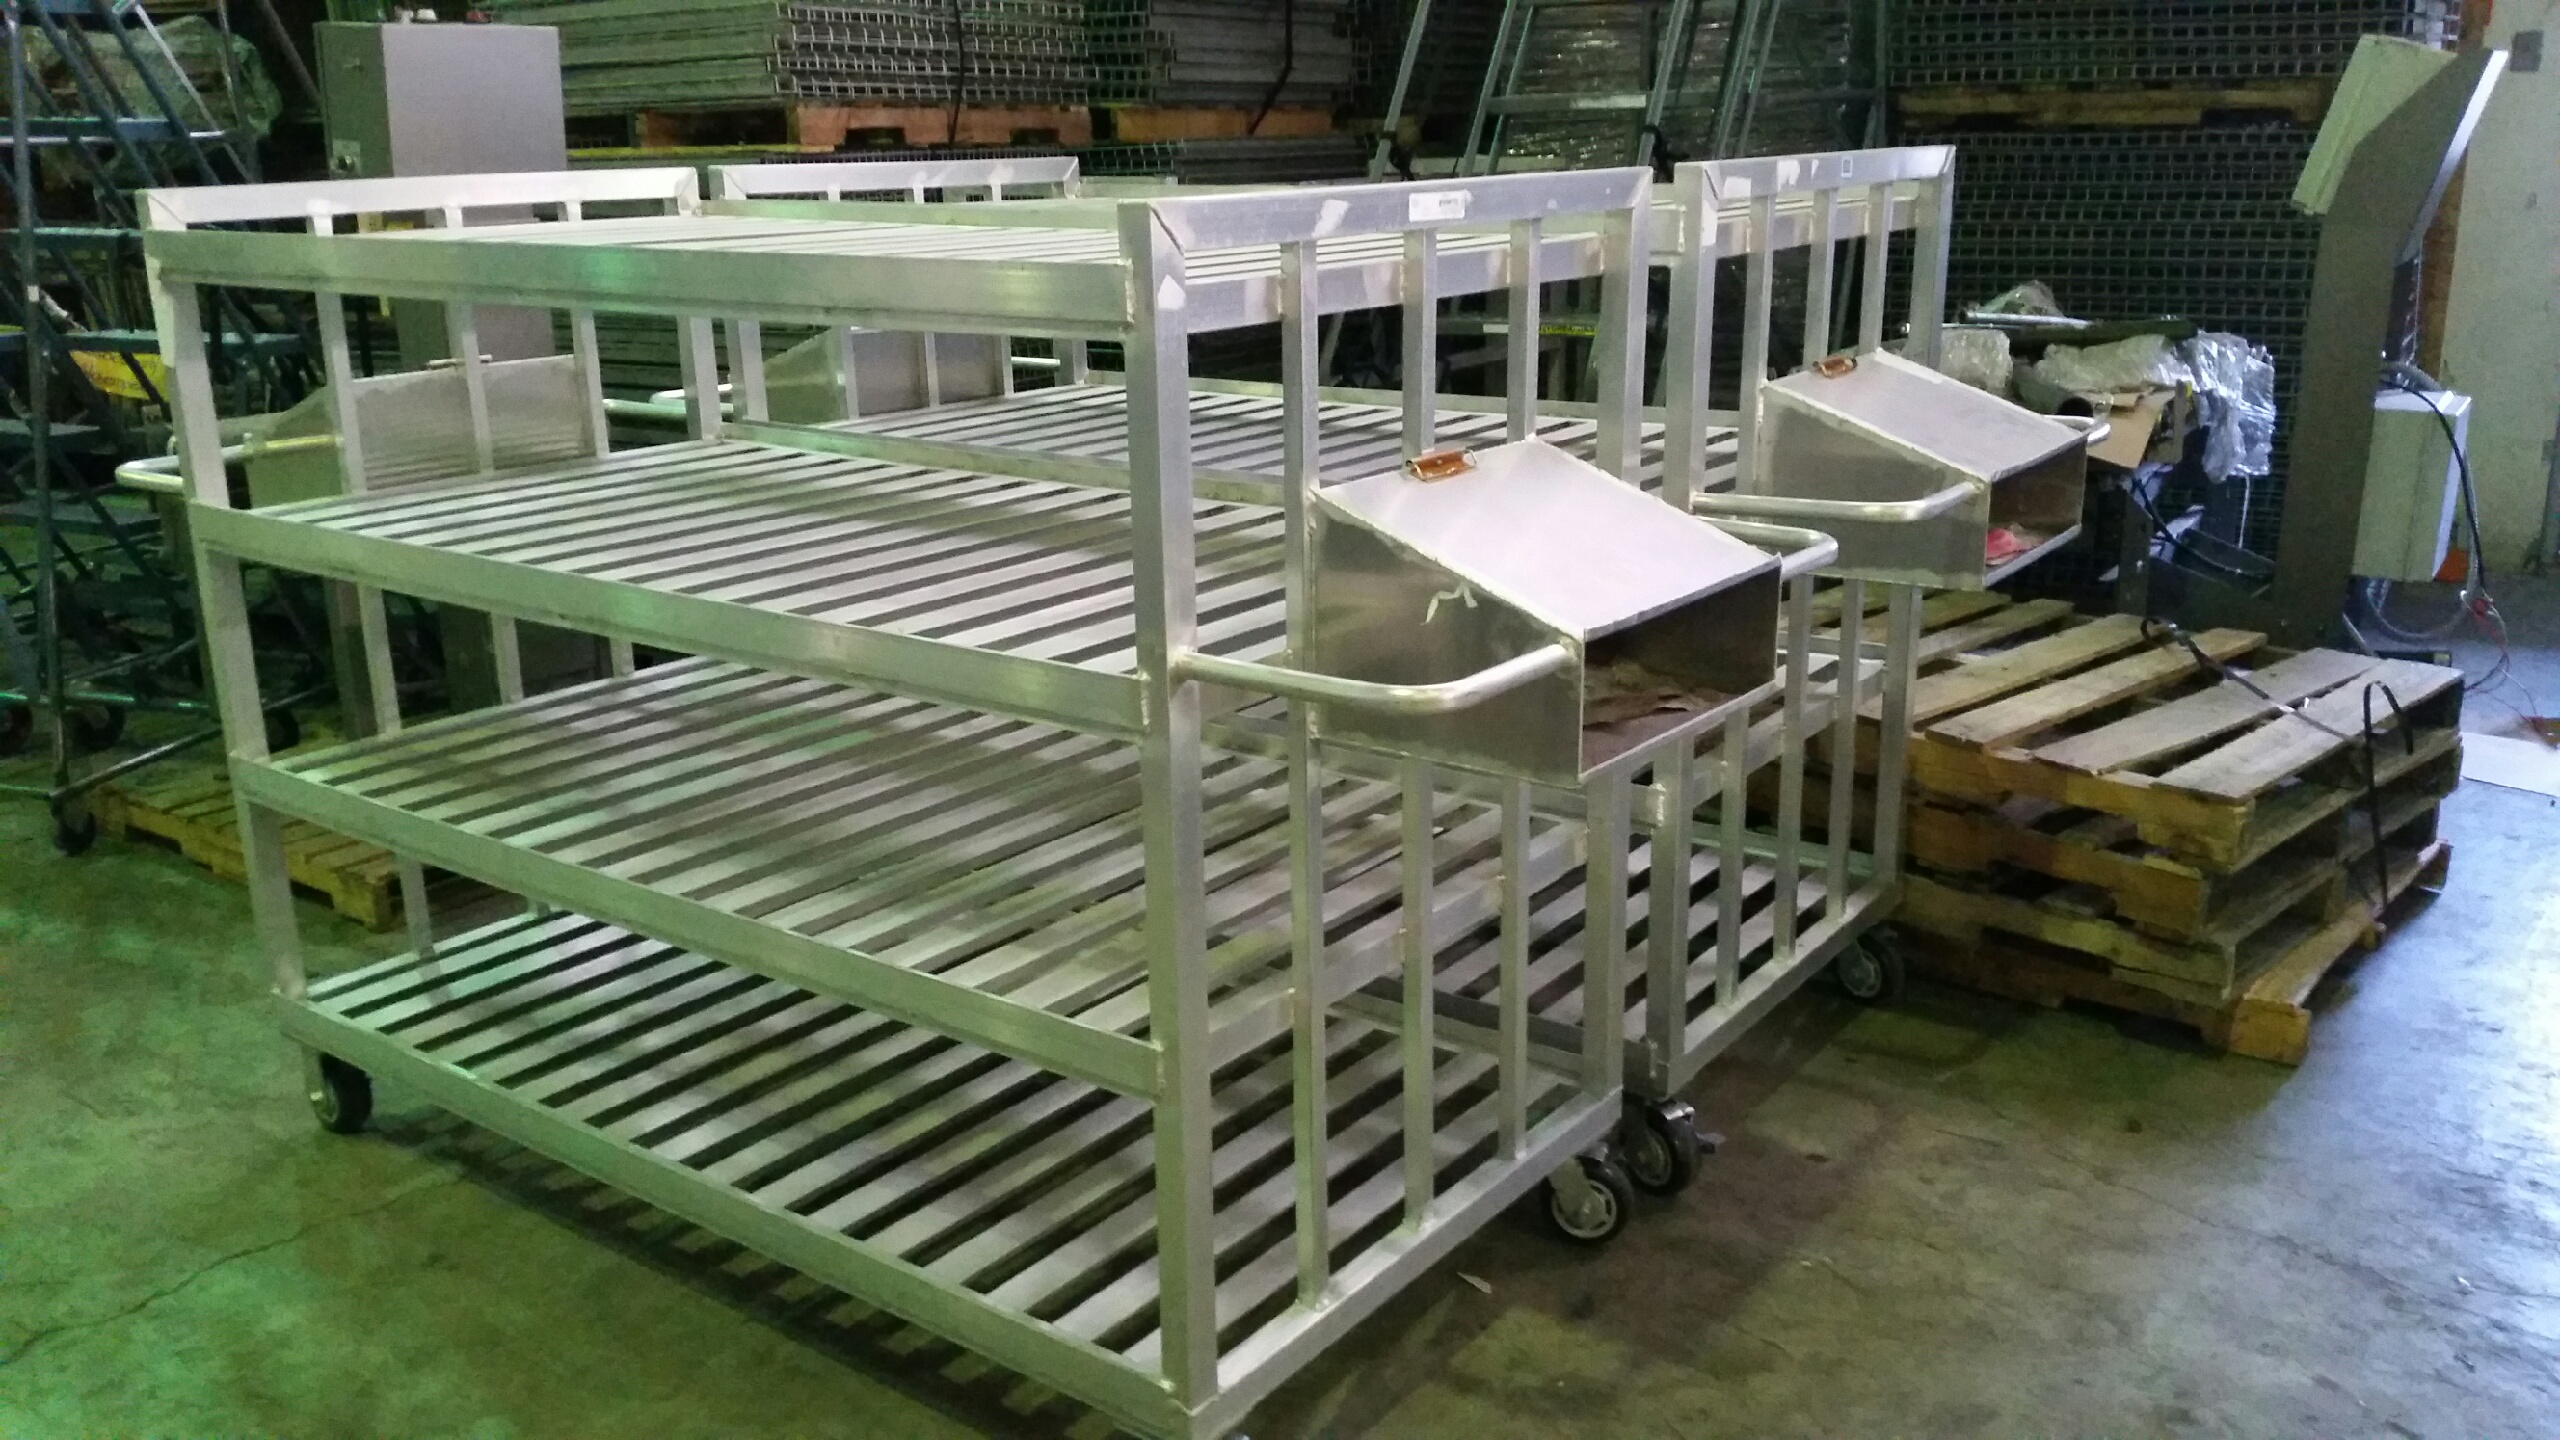 Used Aluminum Carrier Carts by New Age Industrial